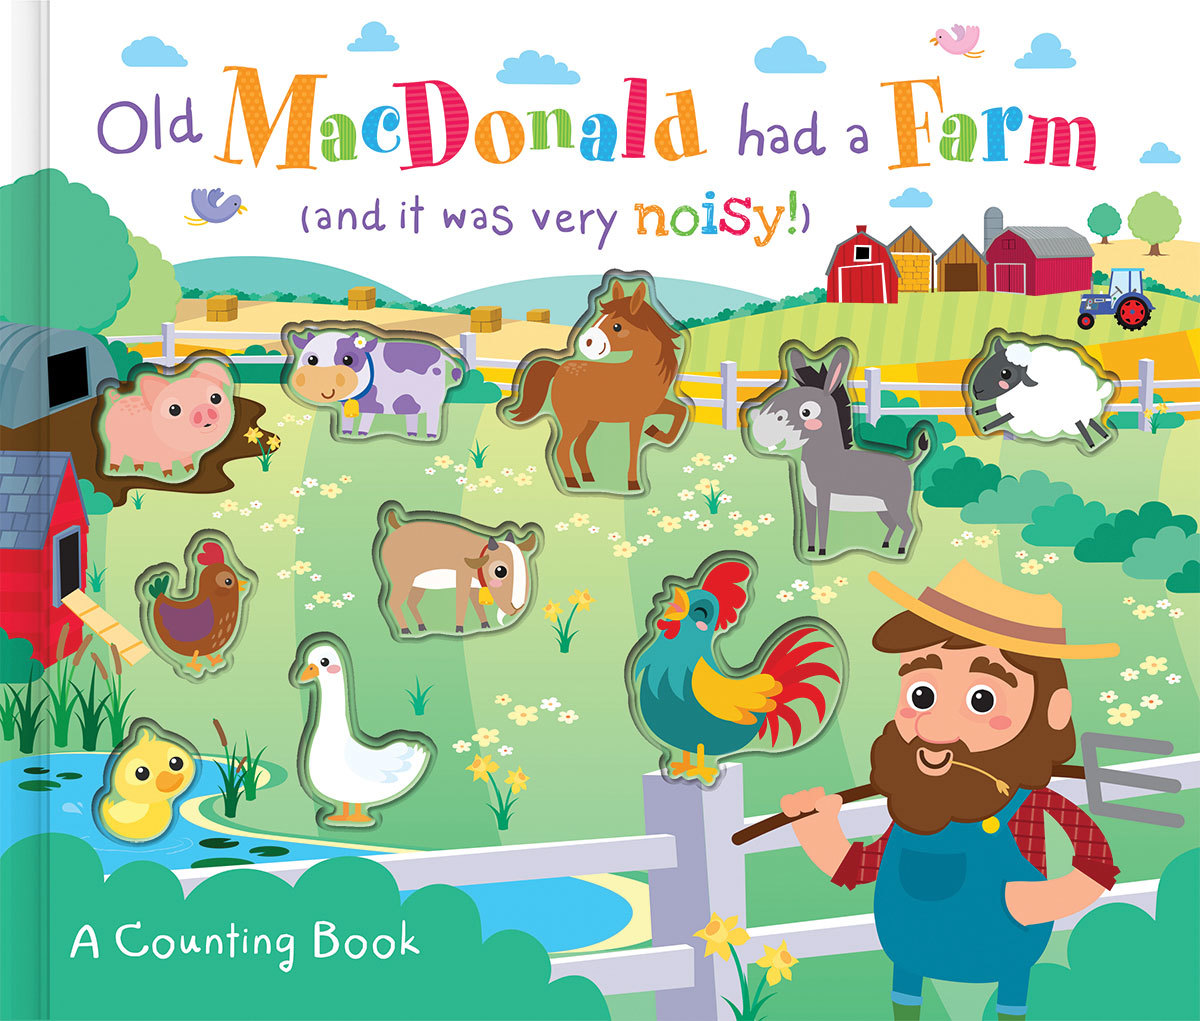 OLD MACDONALD HAD A FARM (AND IT WAS VERY NOISY!)